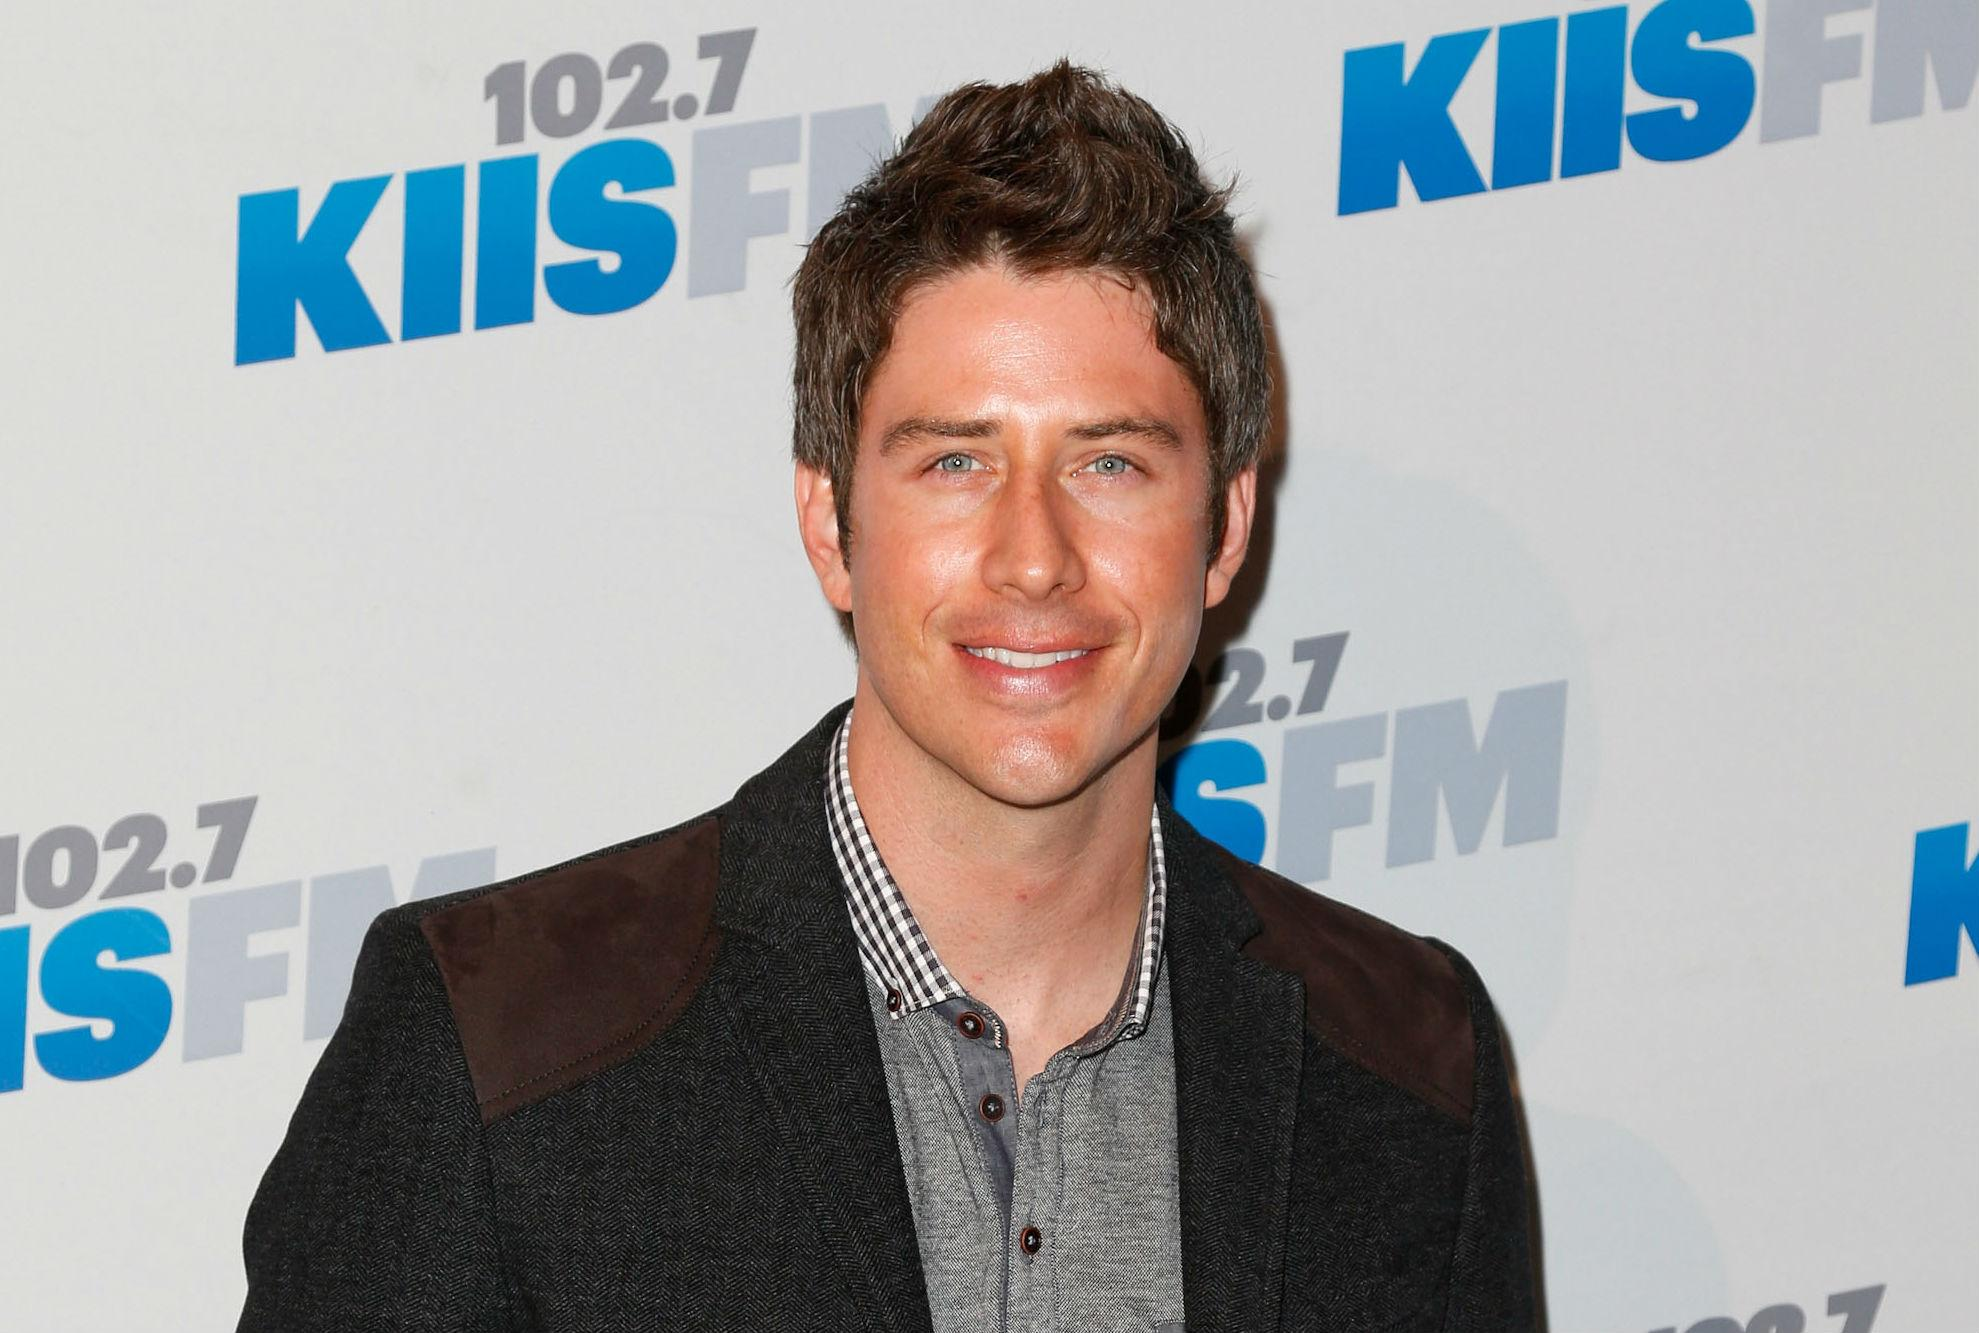 Indy racer Arie Luyendyk Jr. named as 'The Bachelor'